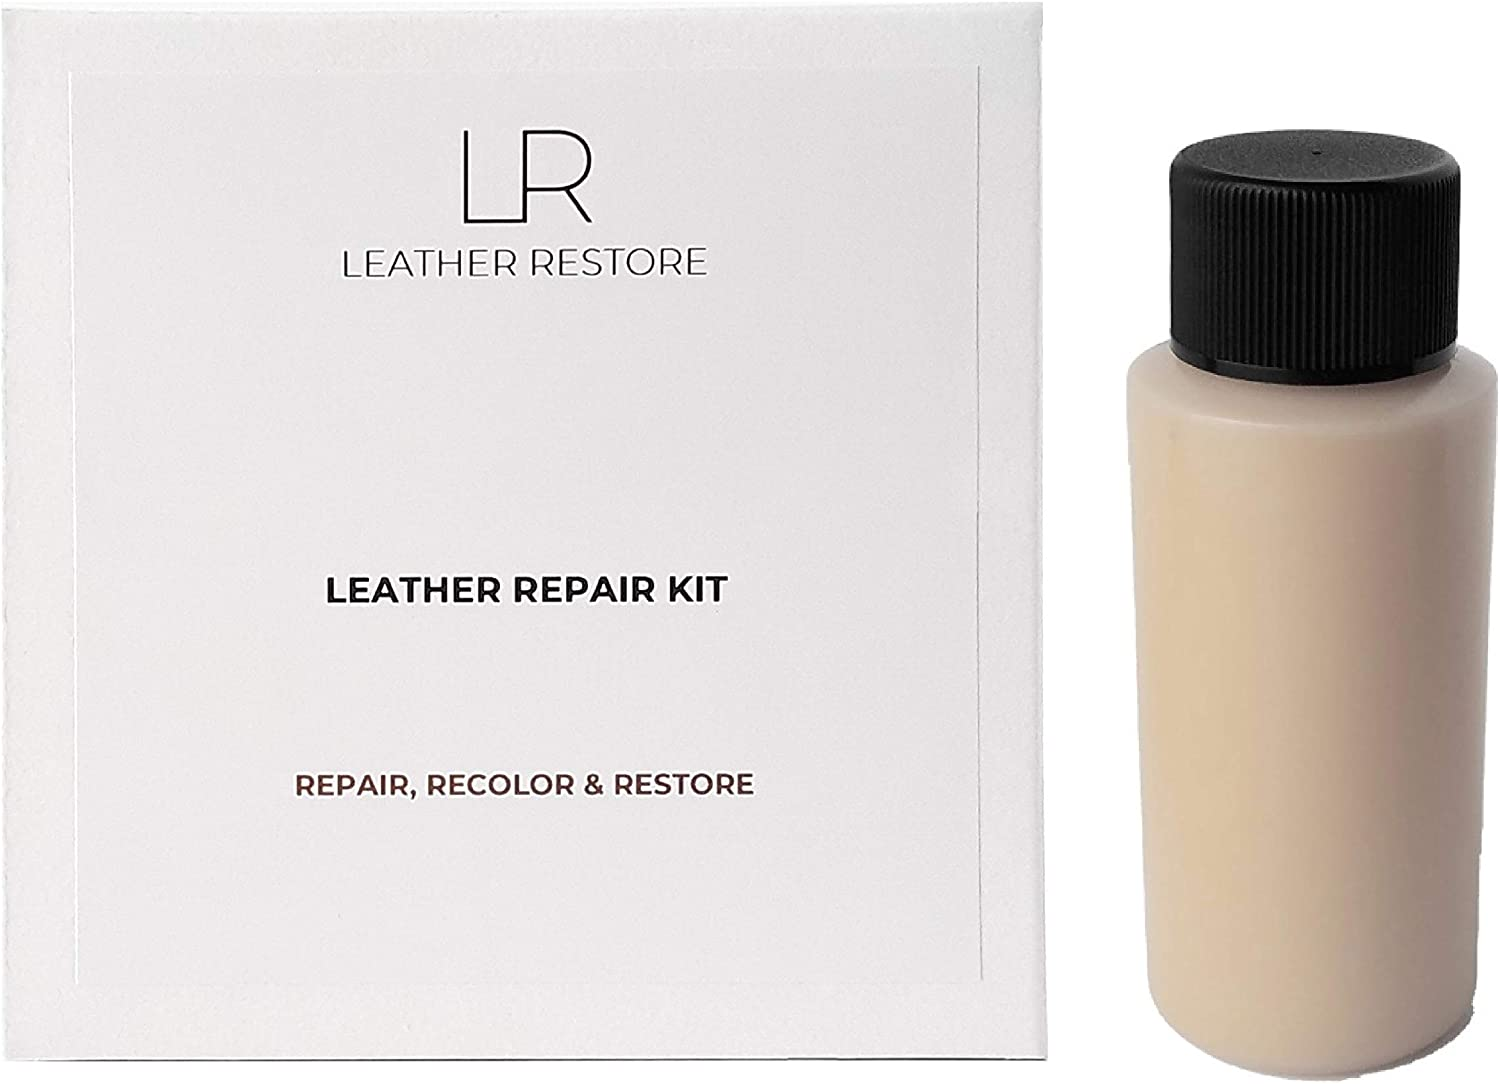 Leather and Vinyl Repair Kit with Ready to Use Color, Beige - Repair, Recolor & Restore Couch, Furniture, Auto Interior & Car Seats